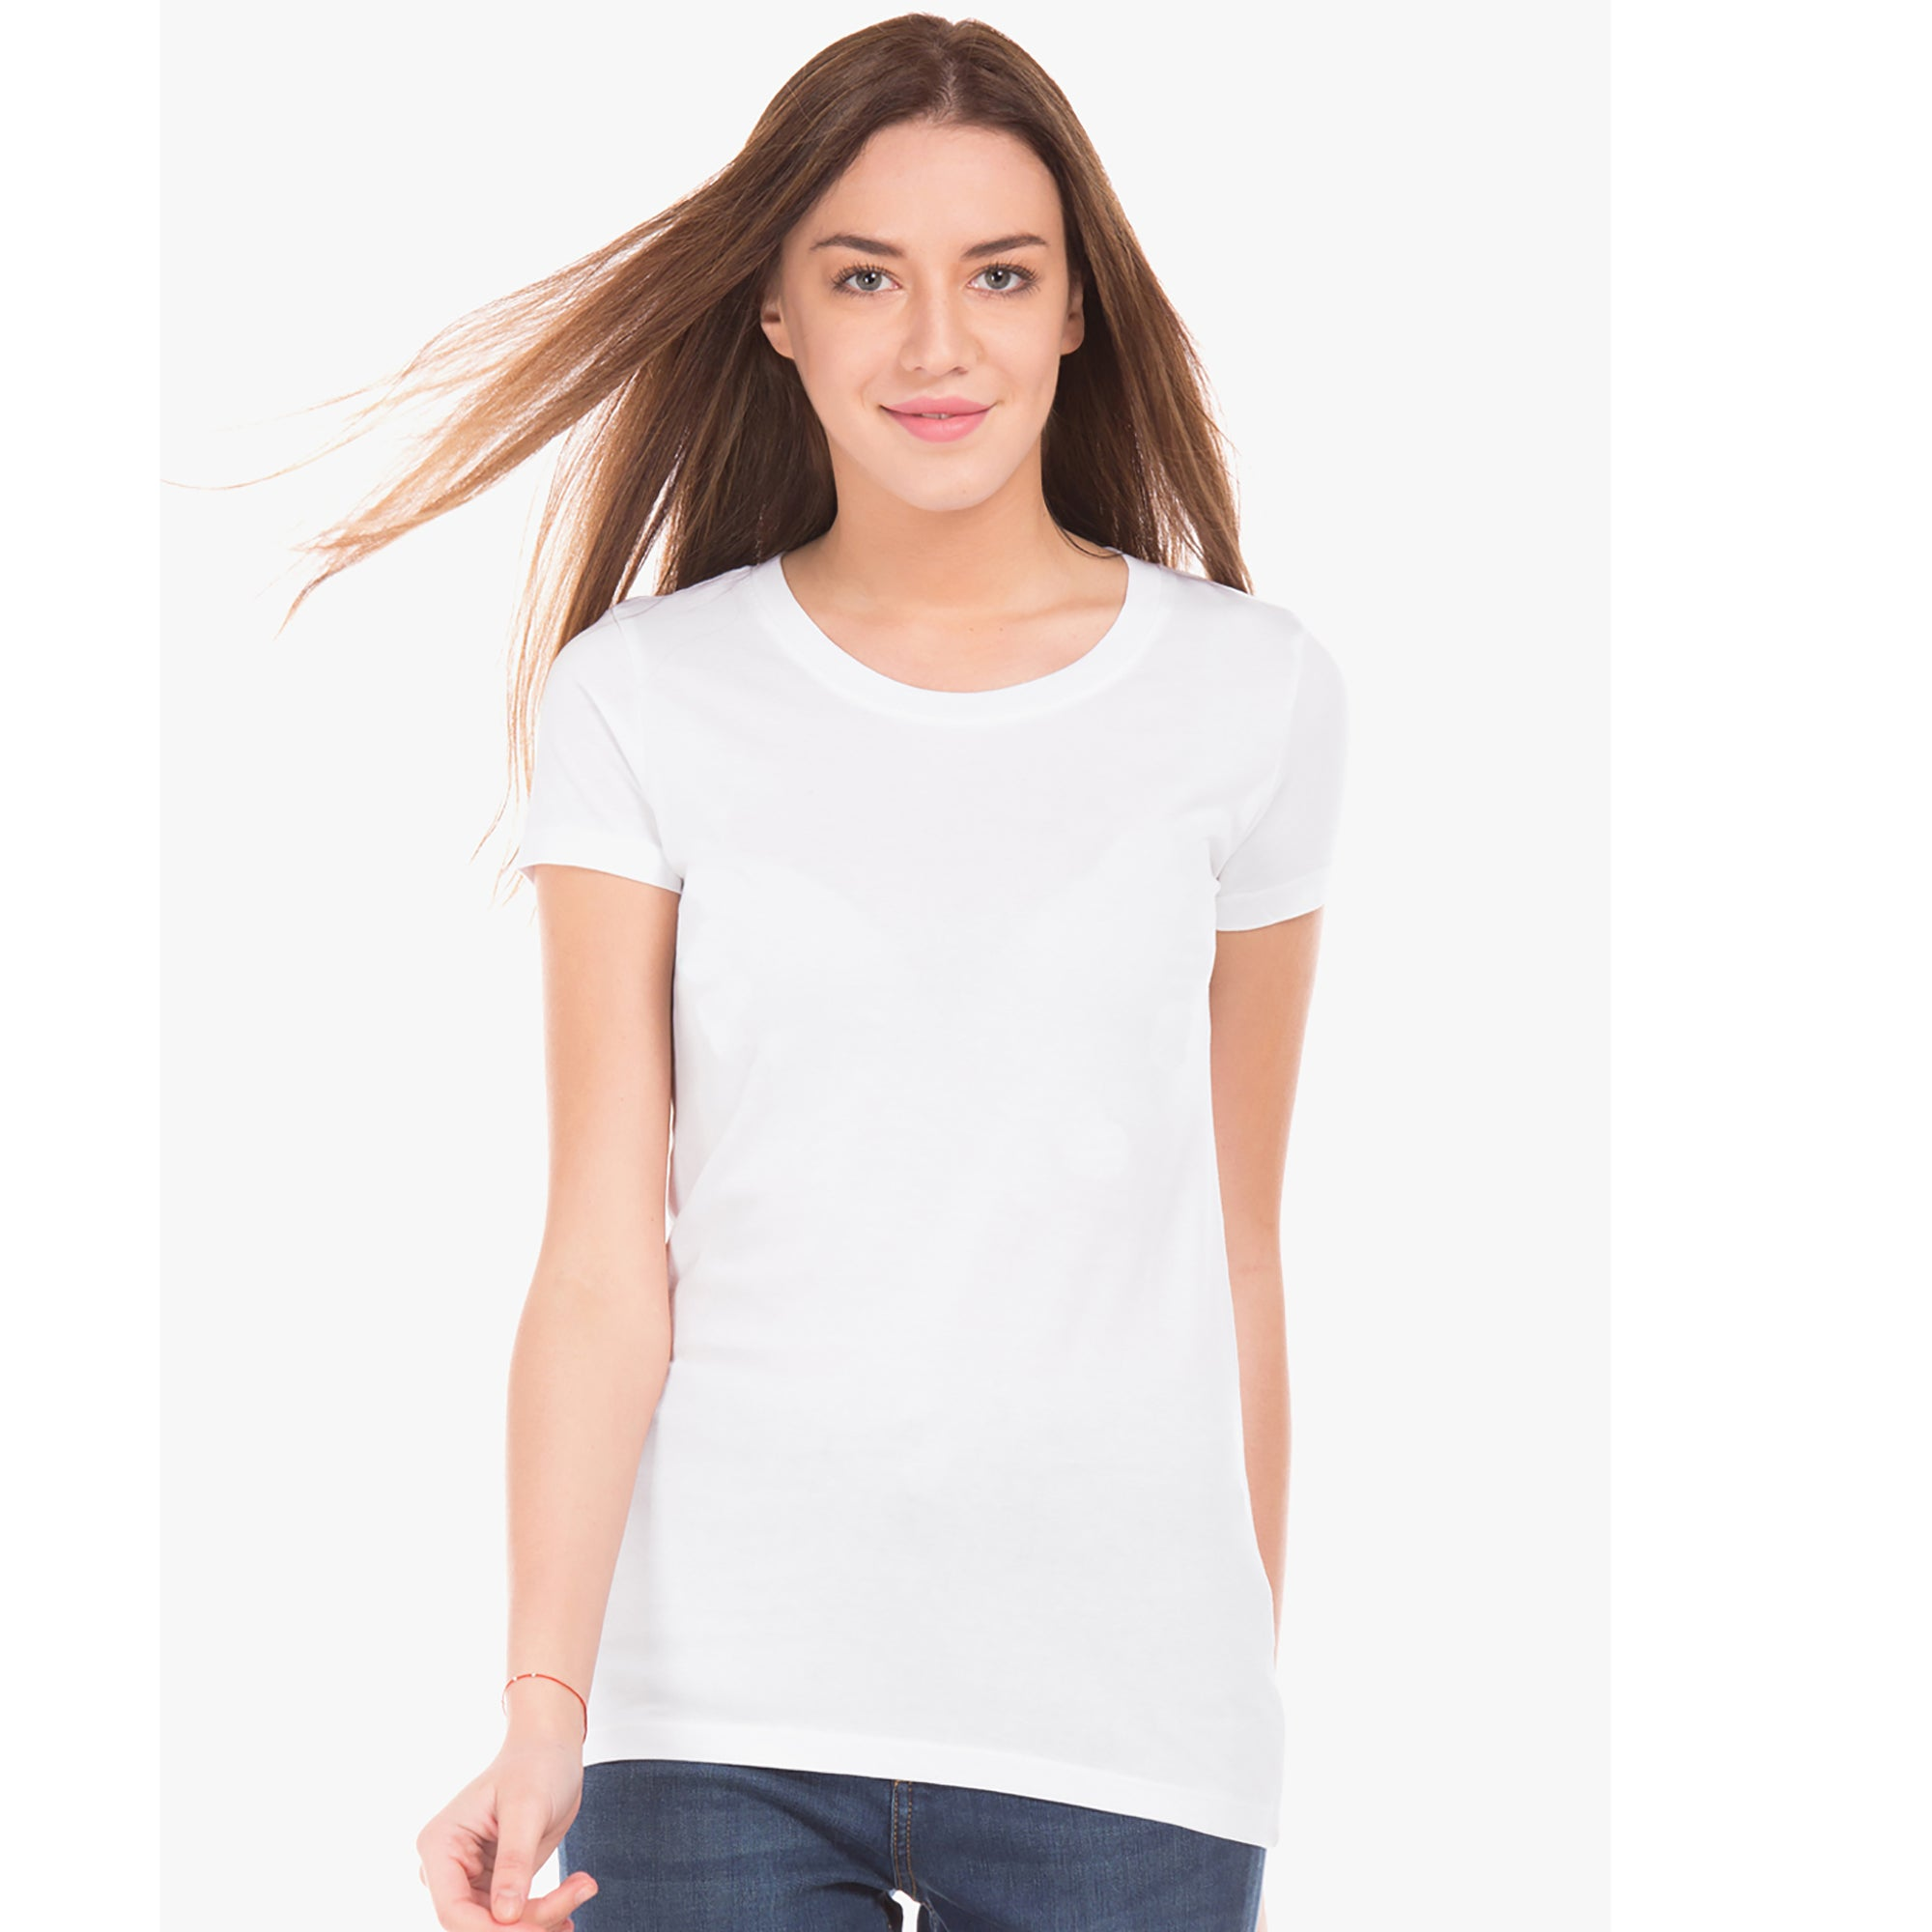 brandsego - Fat Face Single Jersey Crew Neck Blouse For Ladies-White-BE4956